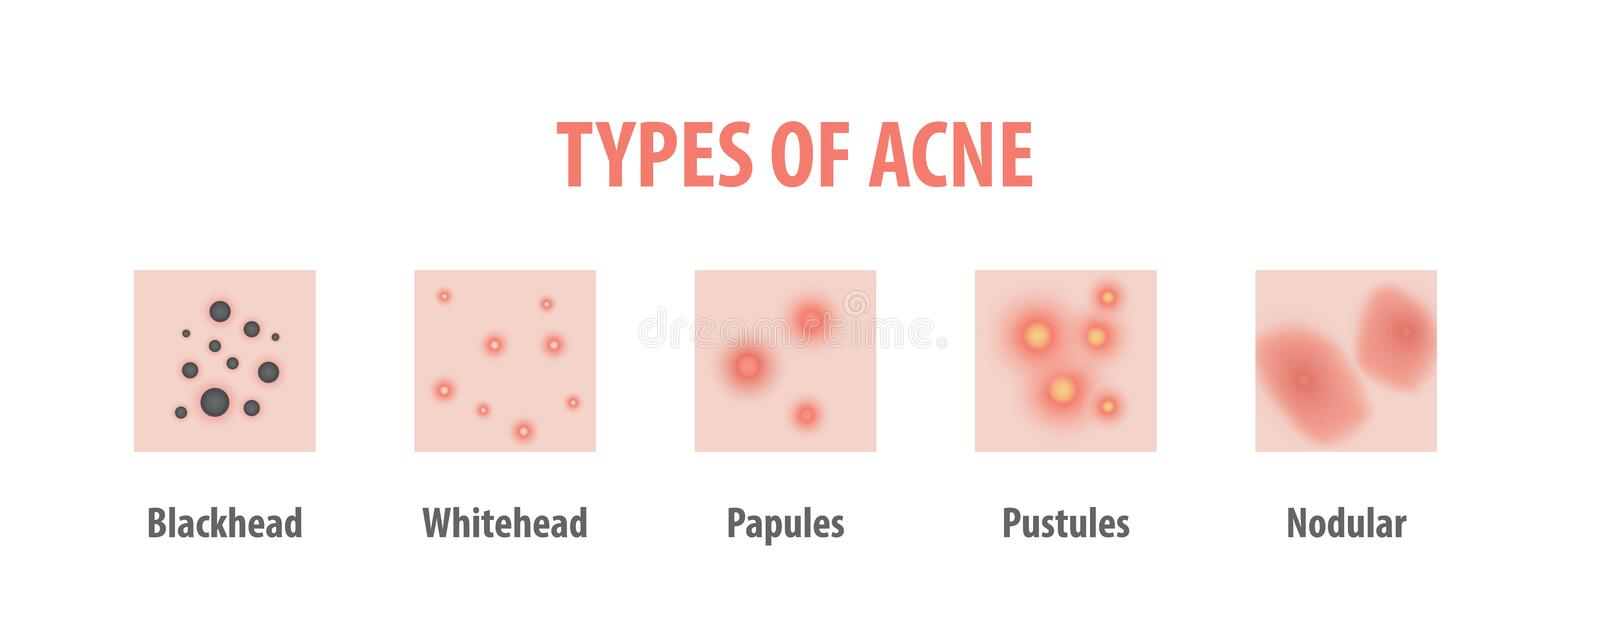 Types of acne diagram illustration vector on white background, B. Eauty concept royalty free illustration